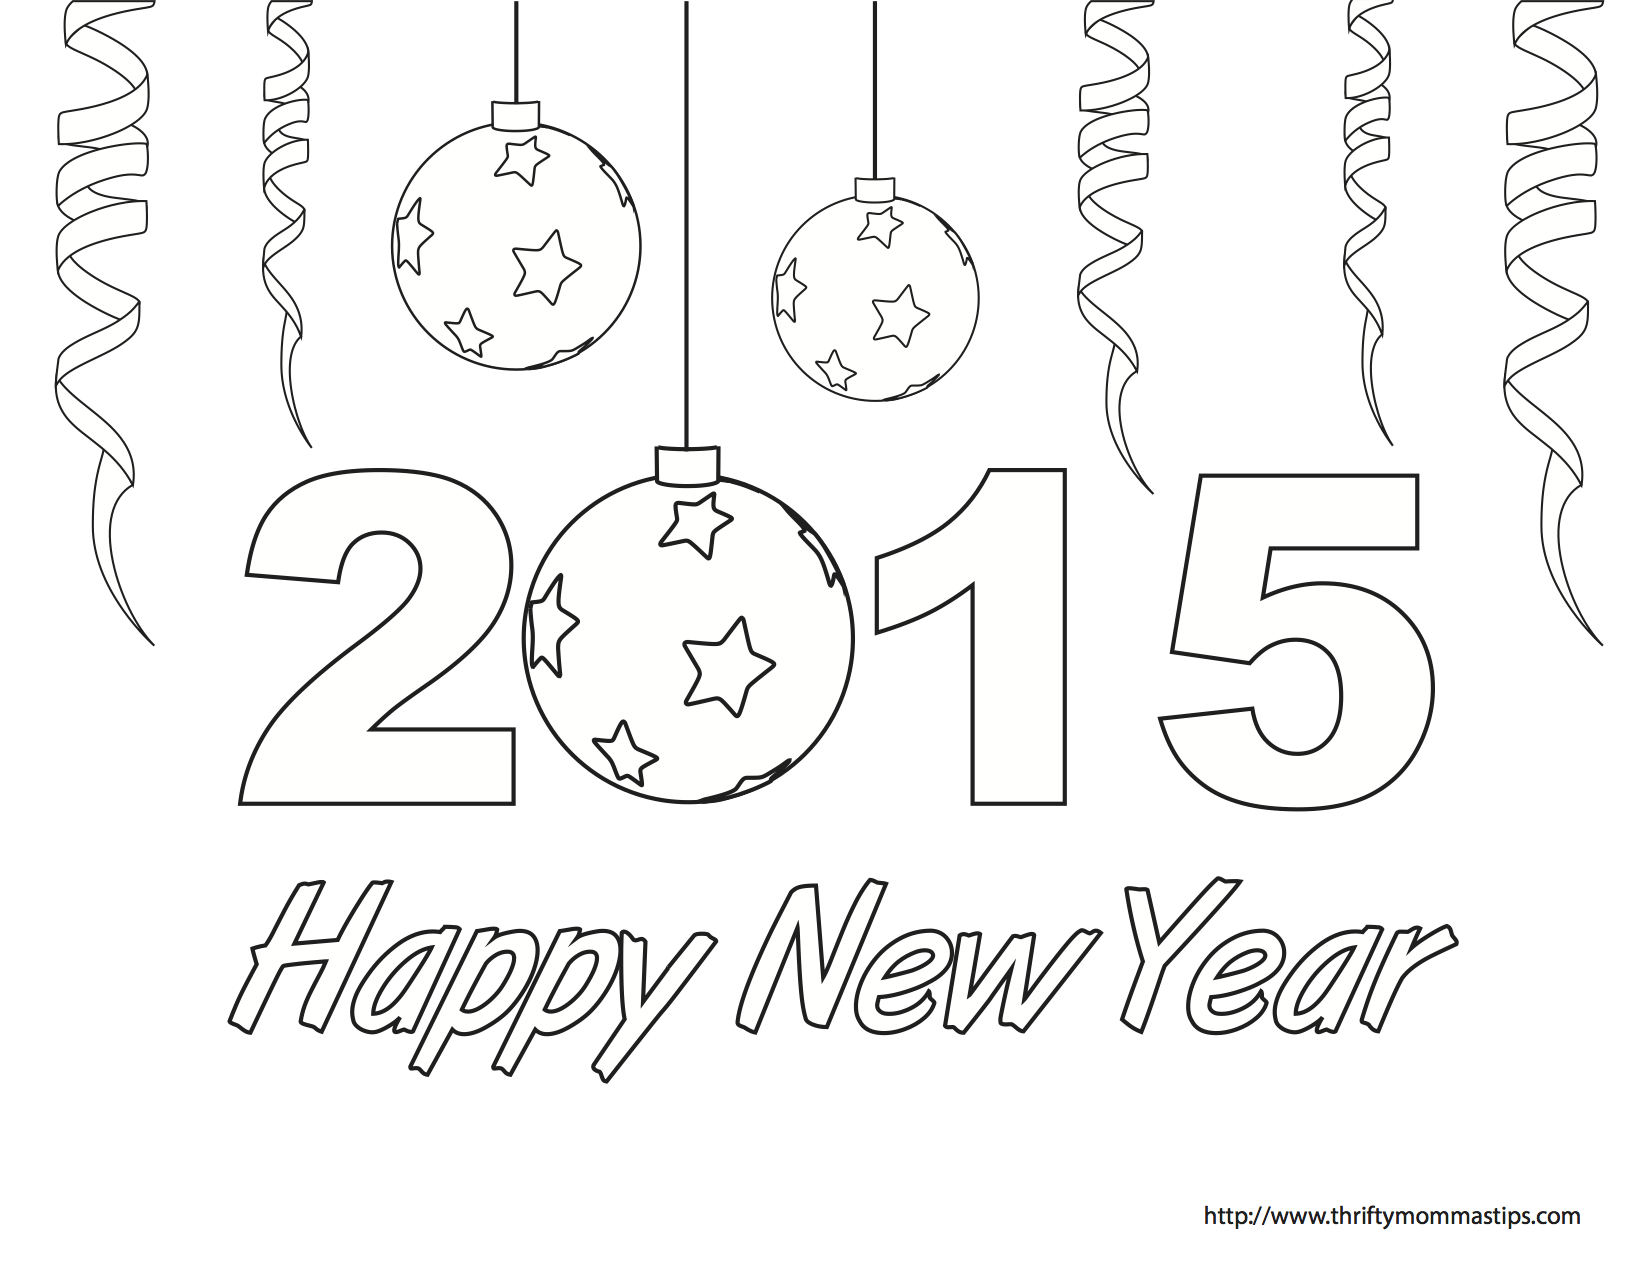 Free coloring pages new years - Happy New Year Coloring Page Free Printable